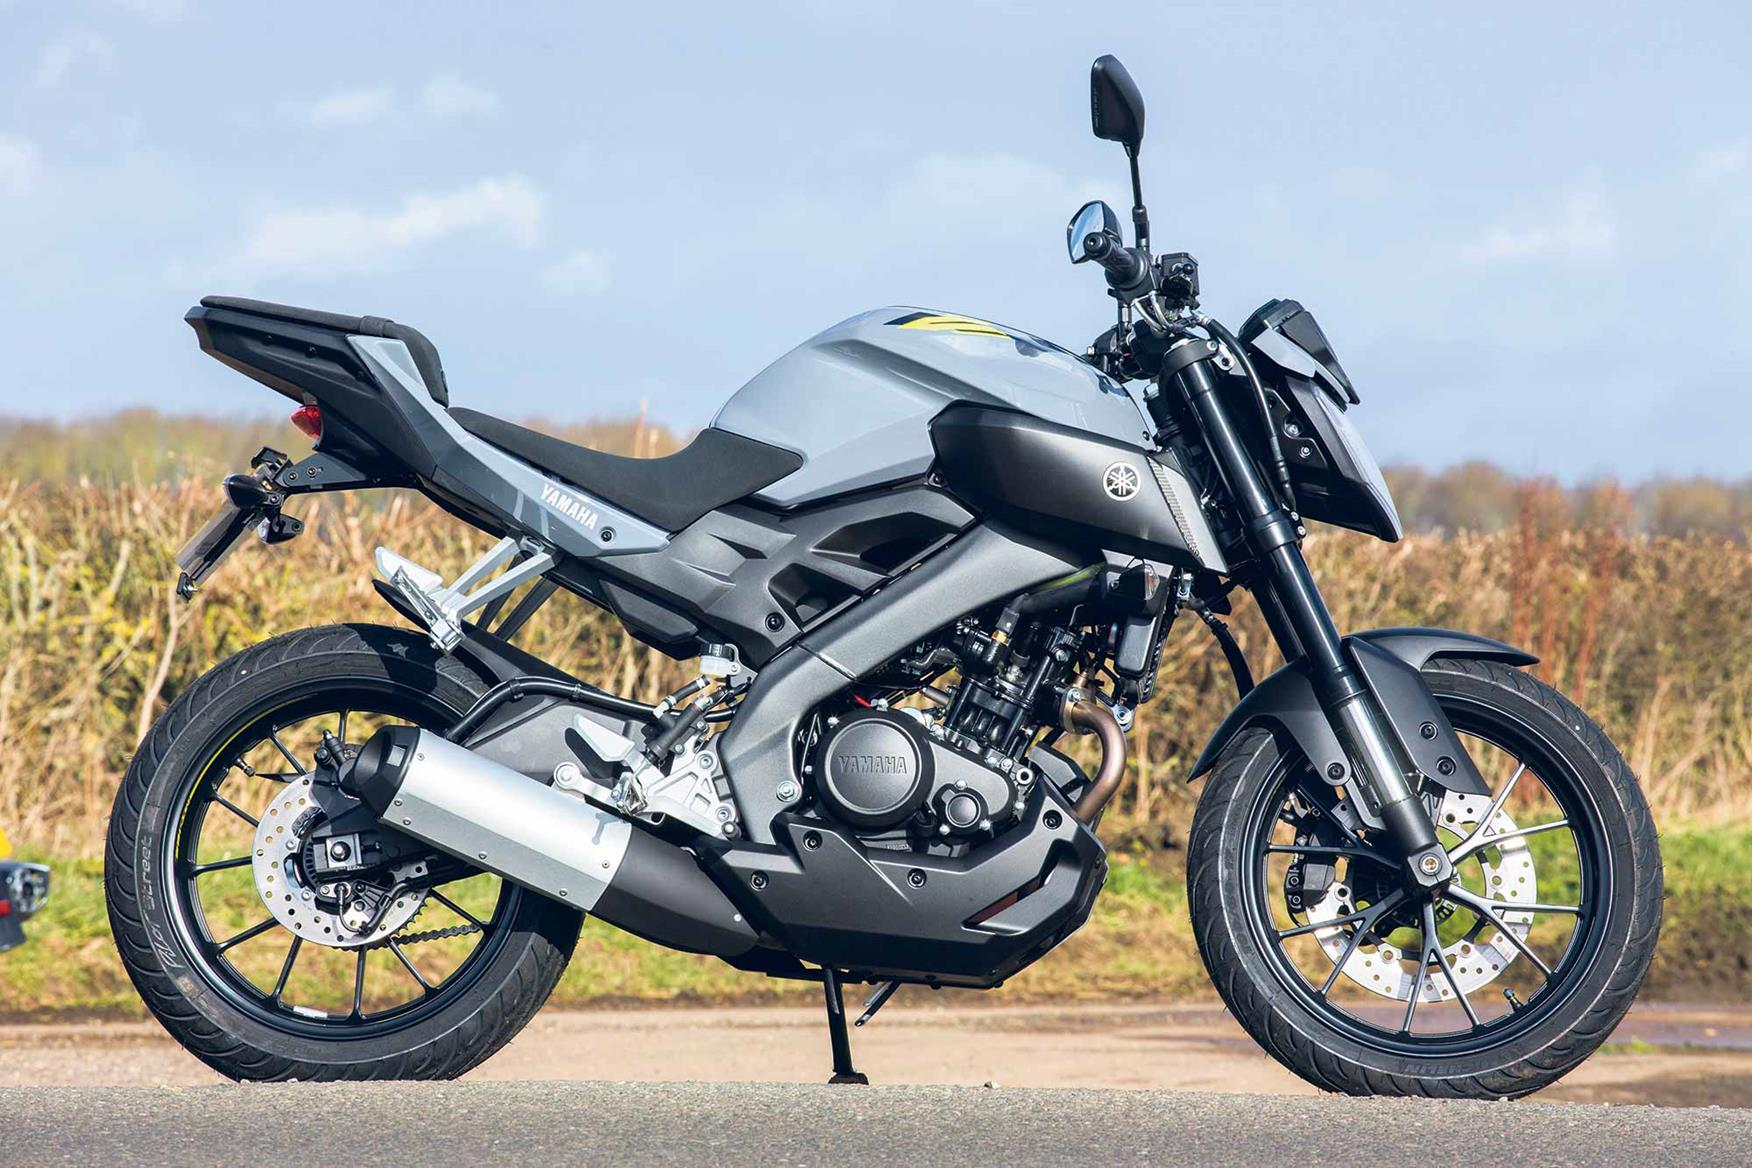 A side-on view of the Yamaha MT-125